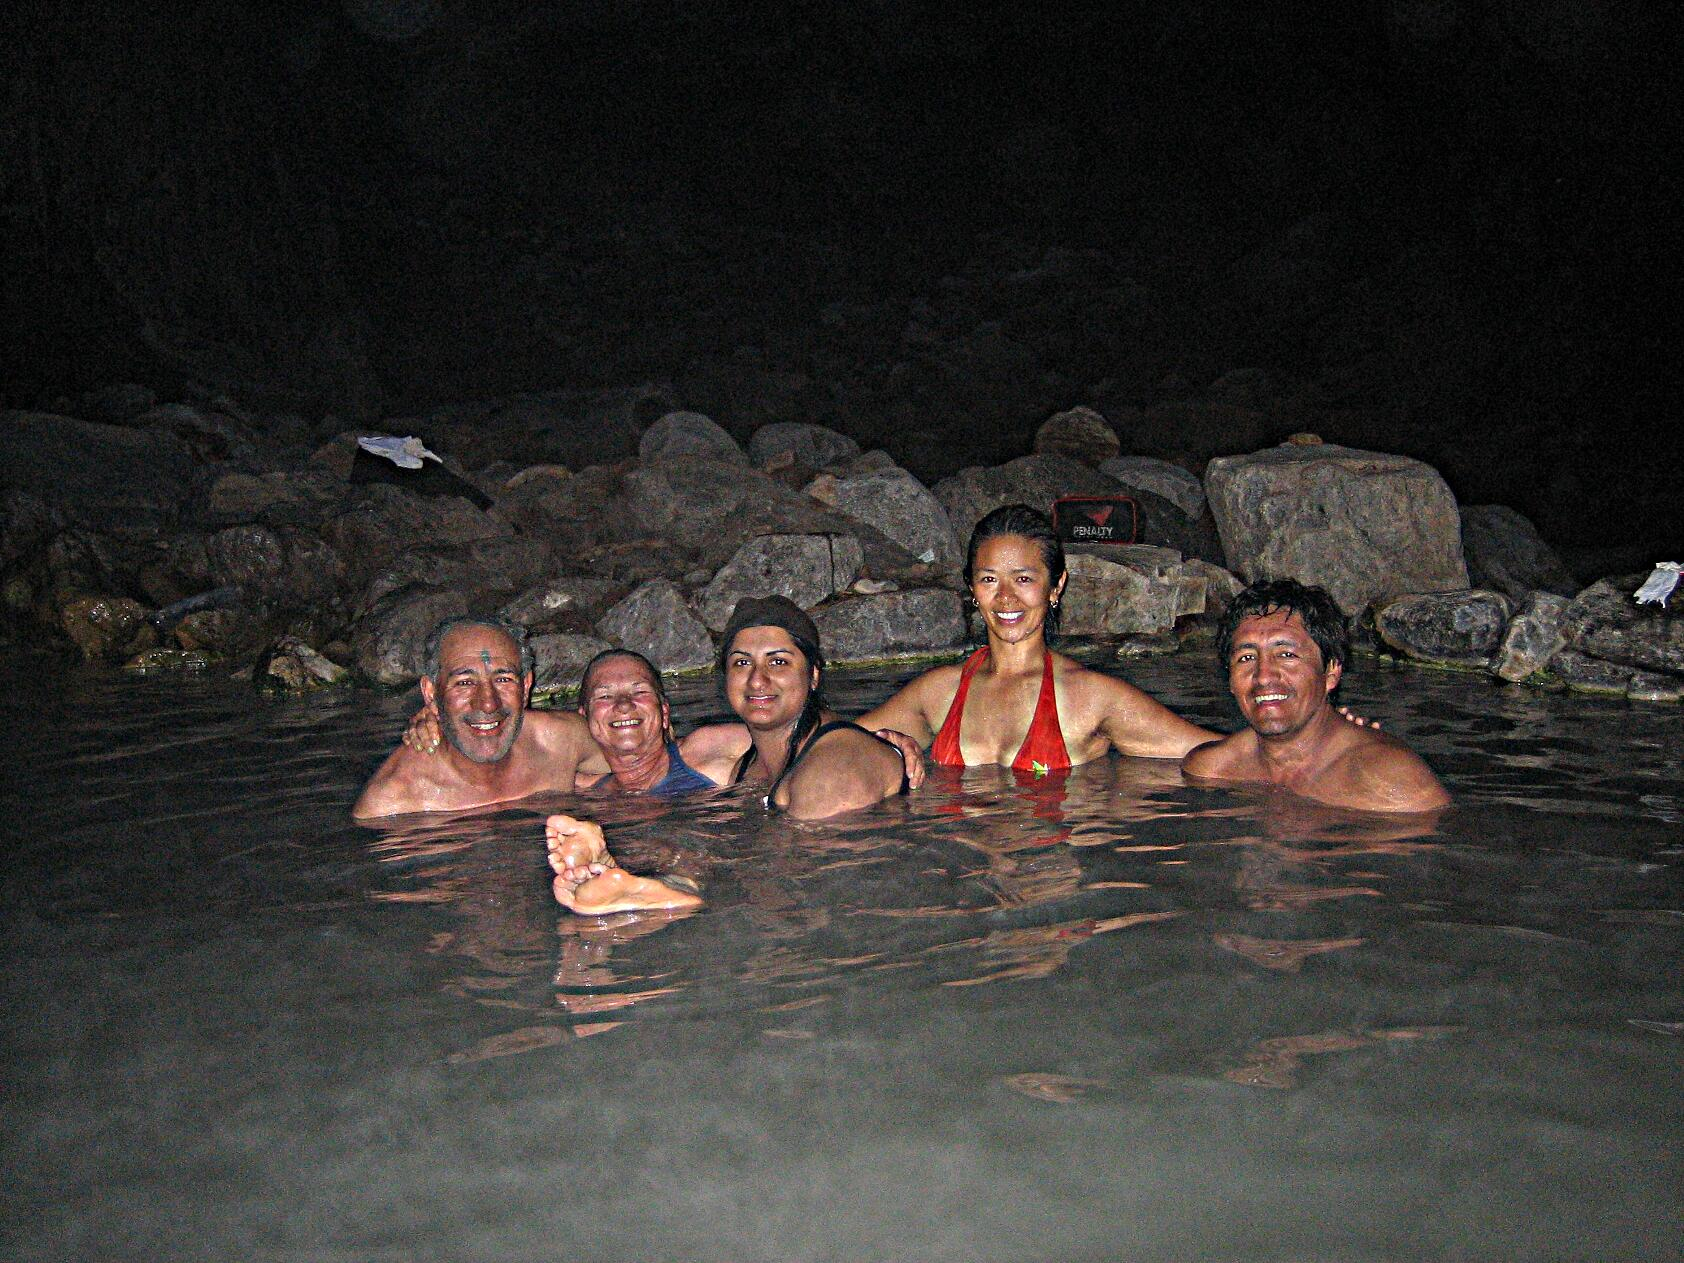 hot springs village chat sites Find homes for sale and real estate in hot springs village, ar at realtorcom® search and filter hot springs village homes by price, beds, baths and property type.